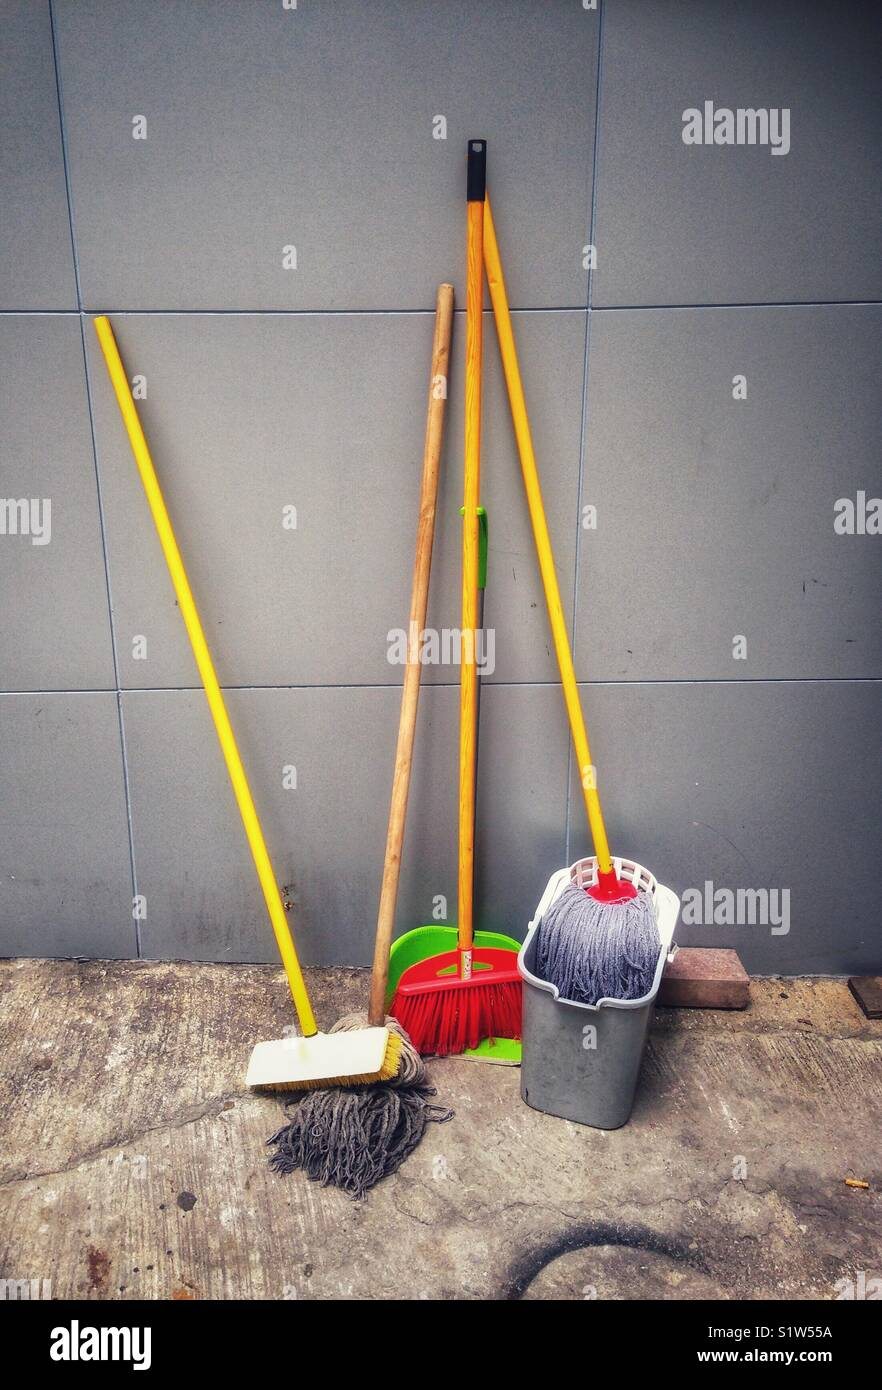 Mops brushes and a bucket - Stock Image